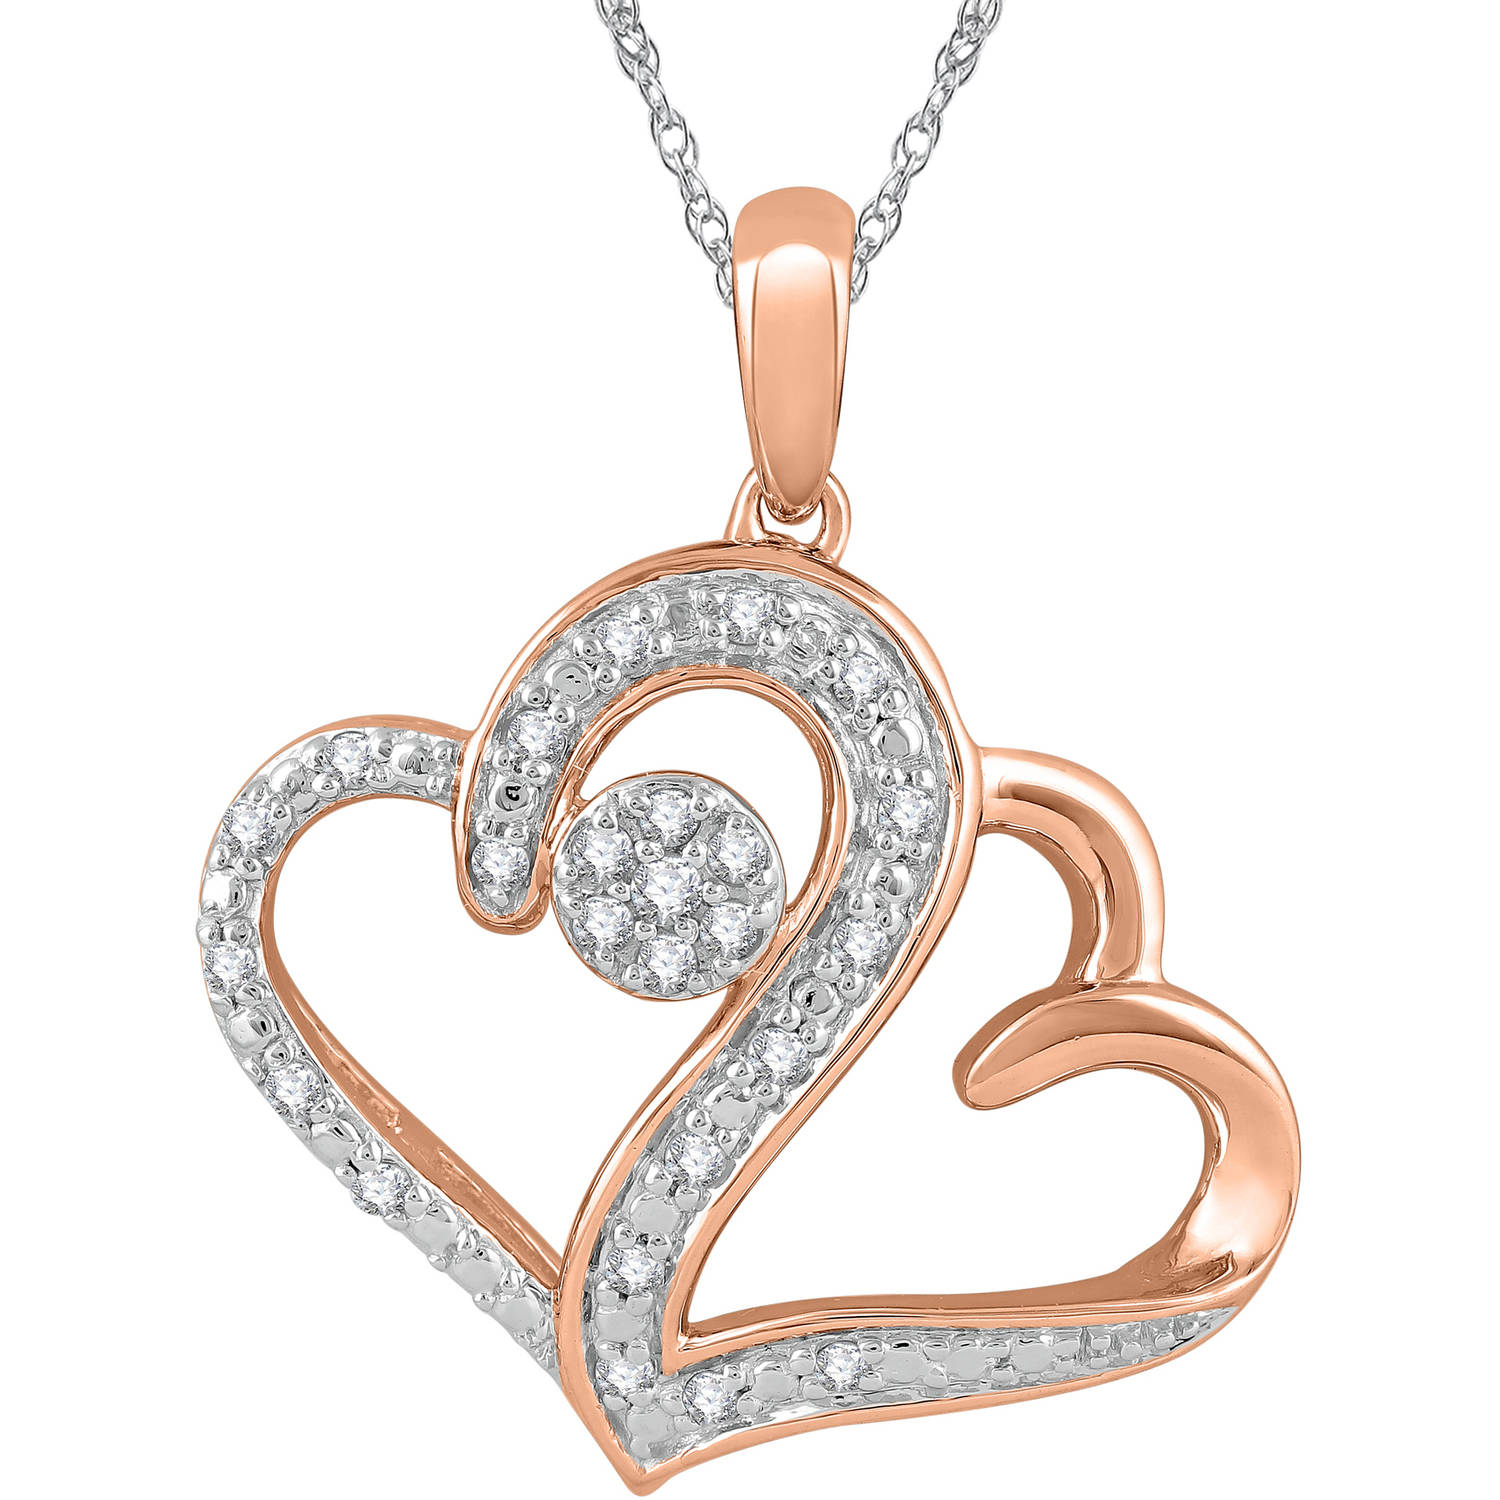 Heart 2 Heart 1/5 Carat T.W. Diamond 14kt Pink Gold over Sterling Silver Pendant with Chain, 18""